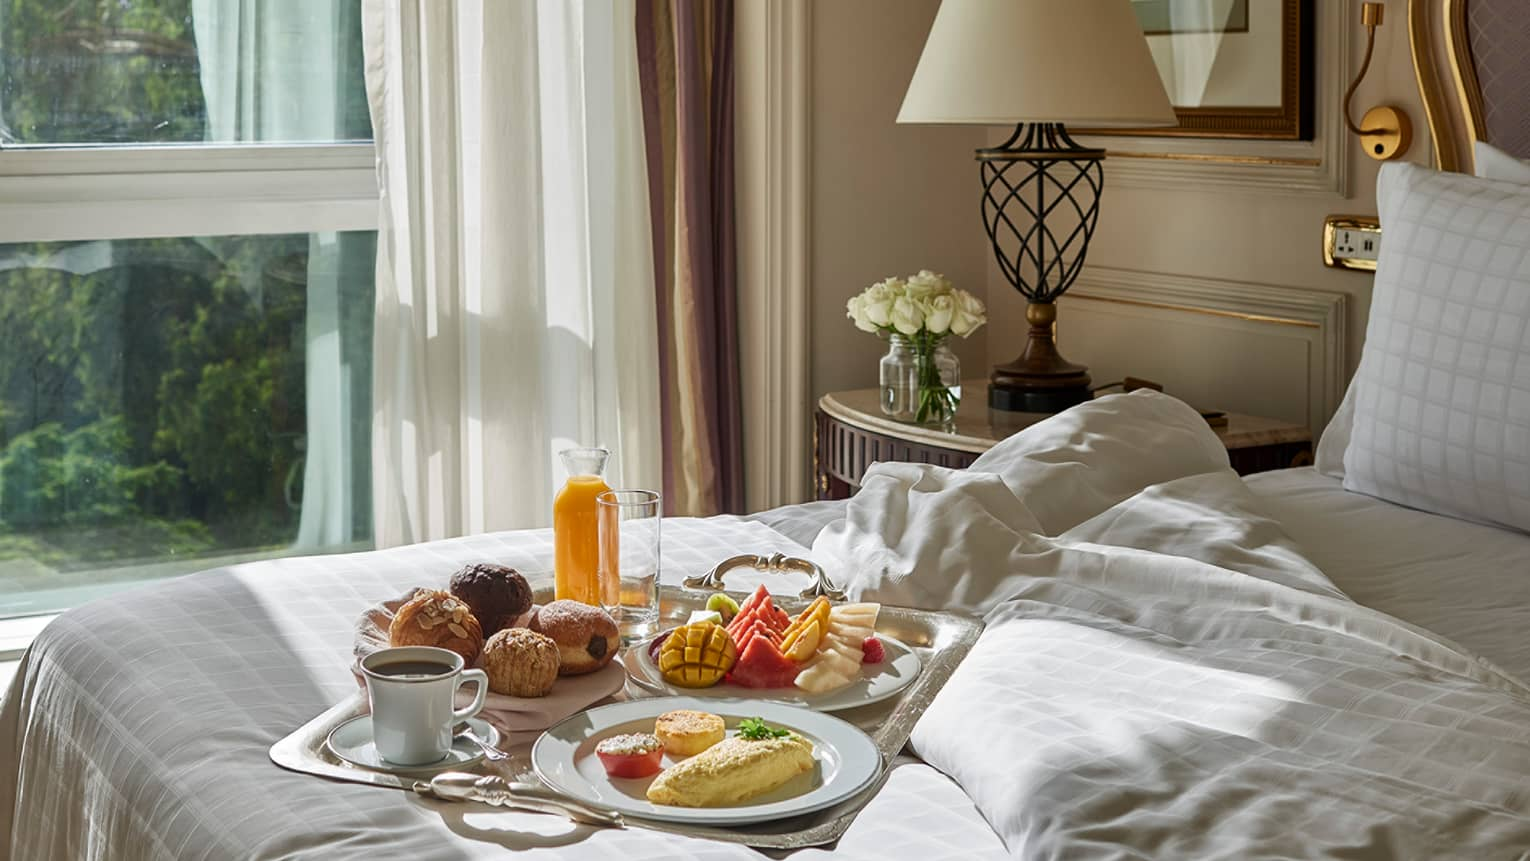 Breakfast tray with coffee, fresh tropical fruit, pastries, jug of orange juice on unmade bed